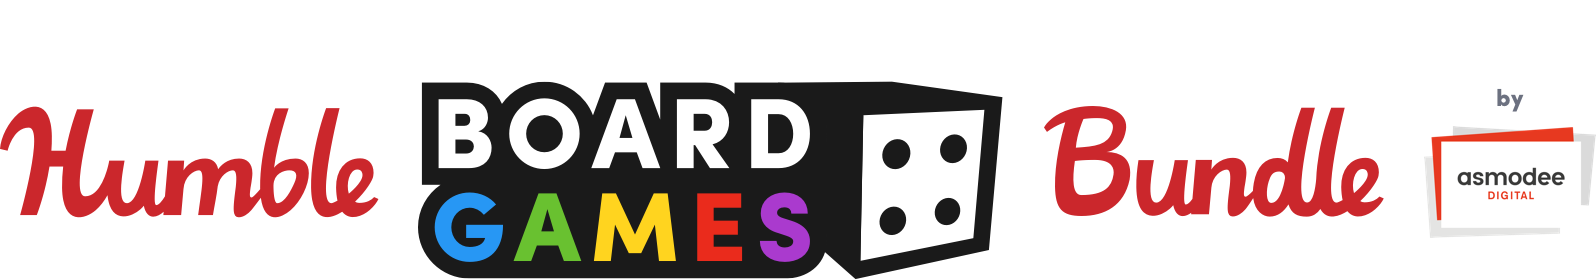 The Humble More Board Games Bundle by Asmodee Digital